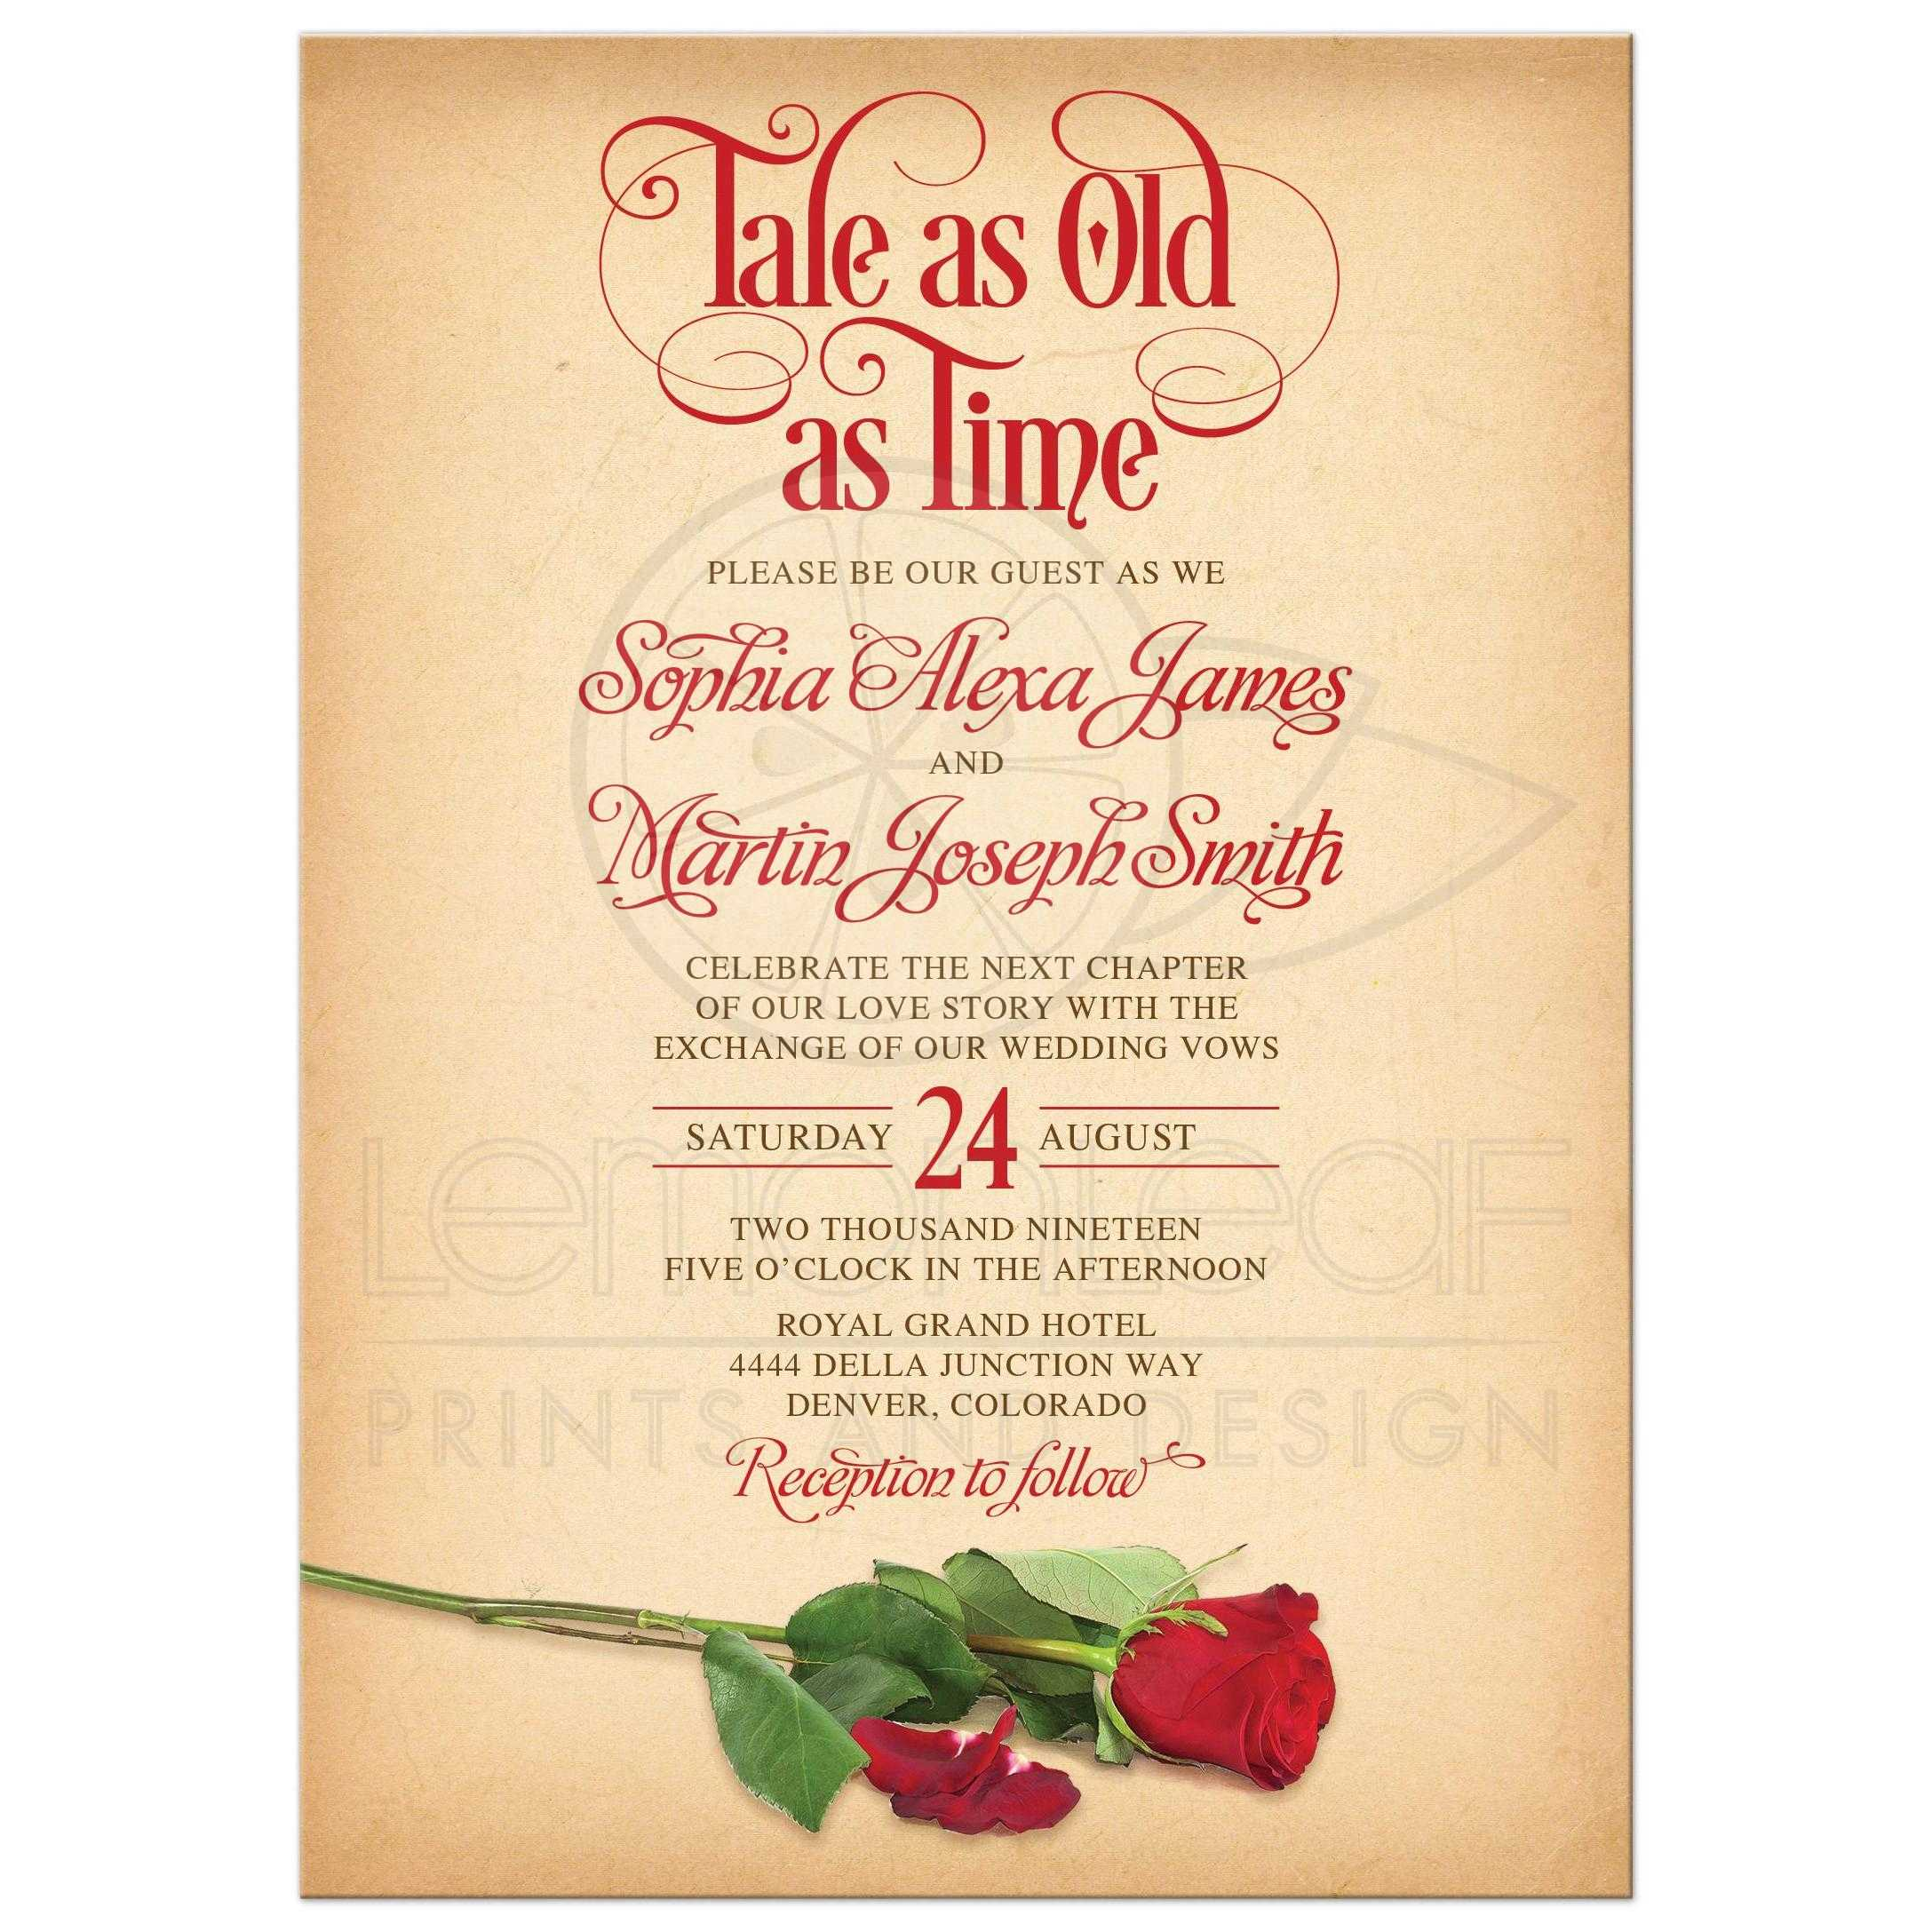 Fairy Tale As Old As Time Wedding Invitation Vintage Parchment Rose